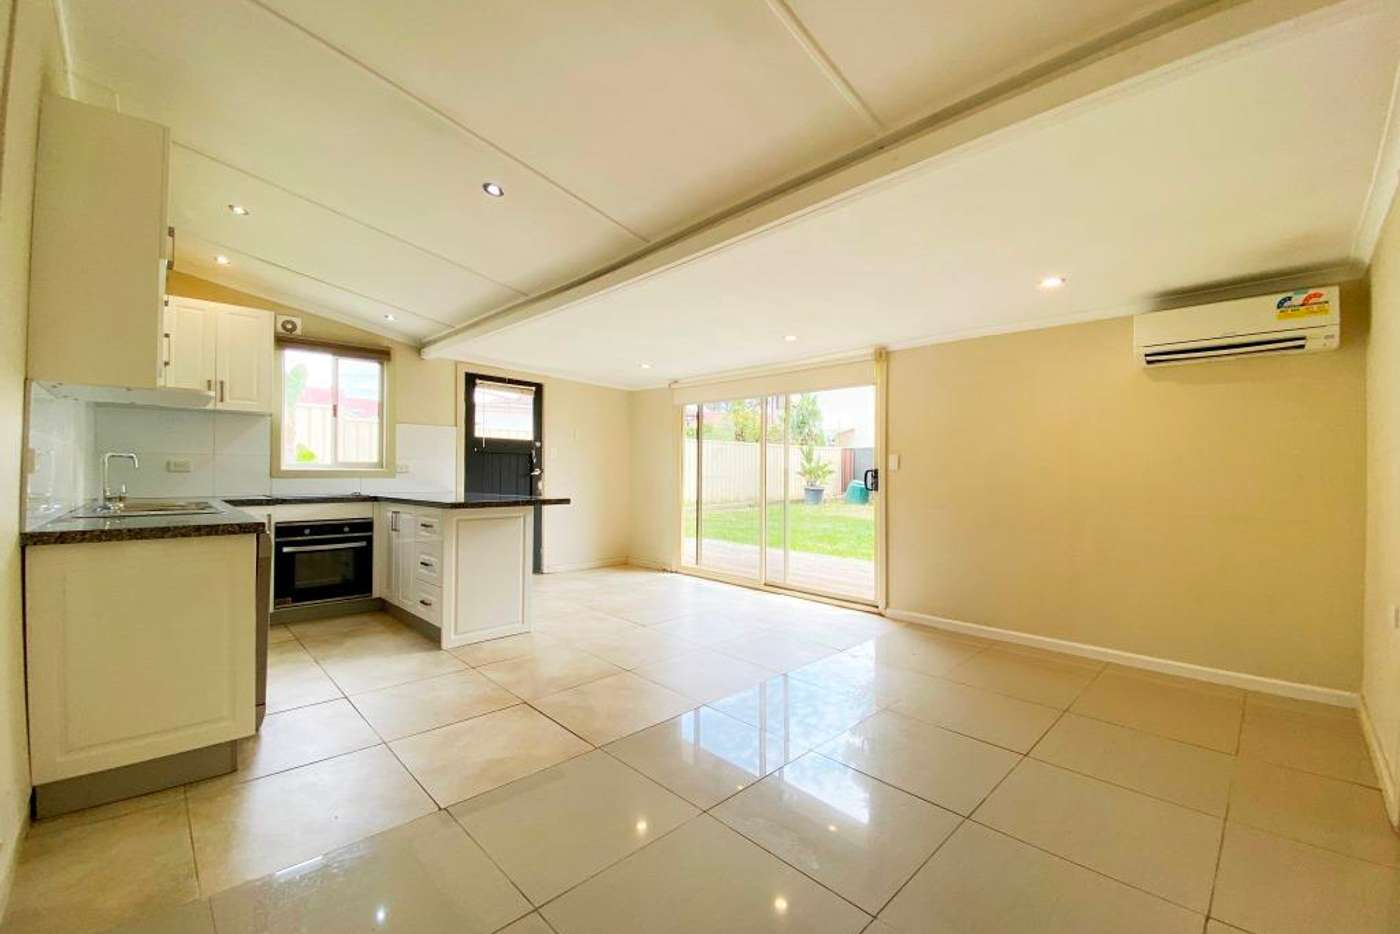 Main view of Homely house listing, 2A Mimosa Ave, Toongabbie NSW 2146